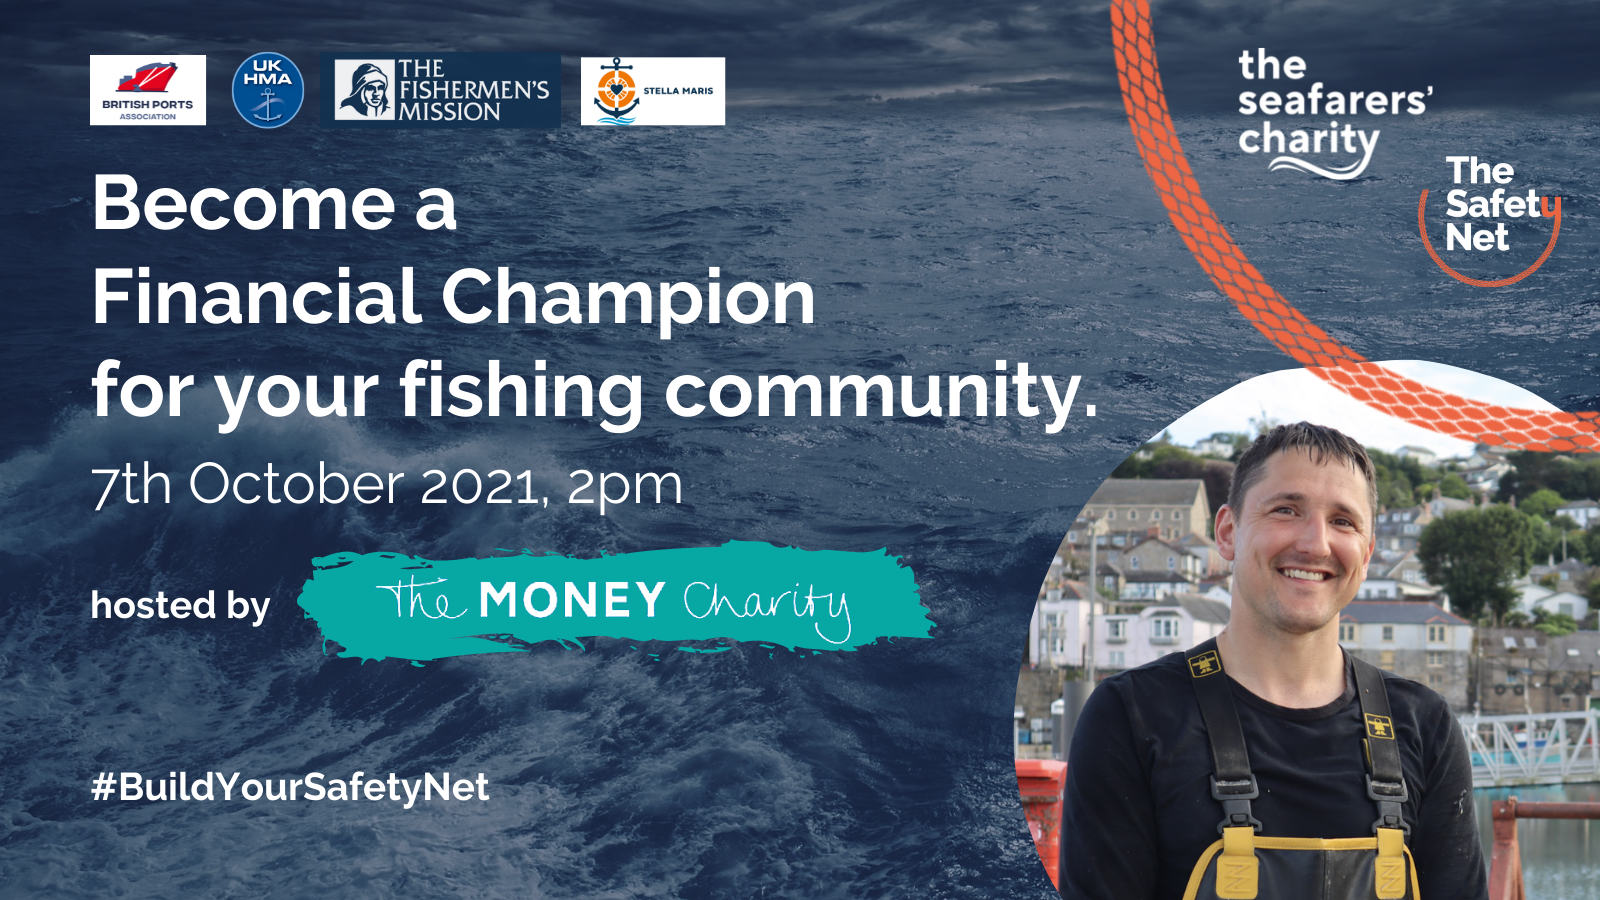 The Seafarers' Charity to train 'financial champions' to strengthen the financial resilience of fiishing communities around the UK